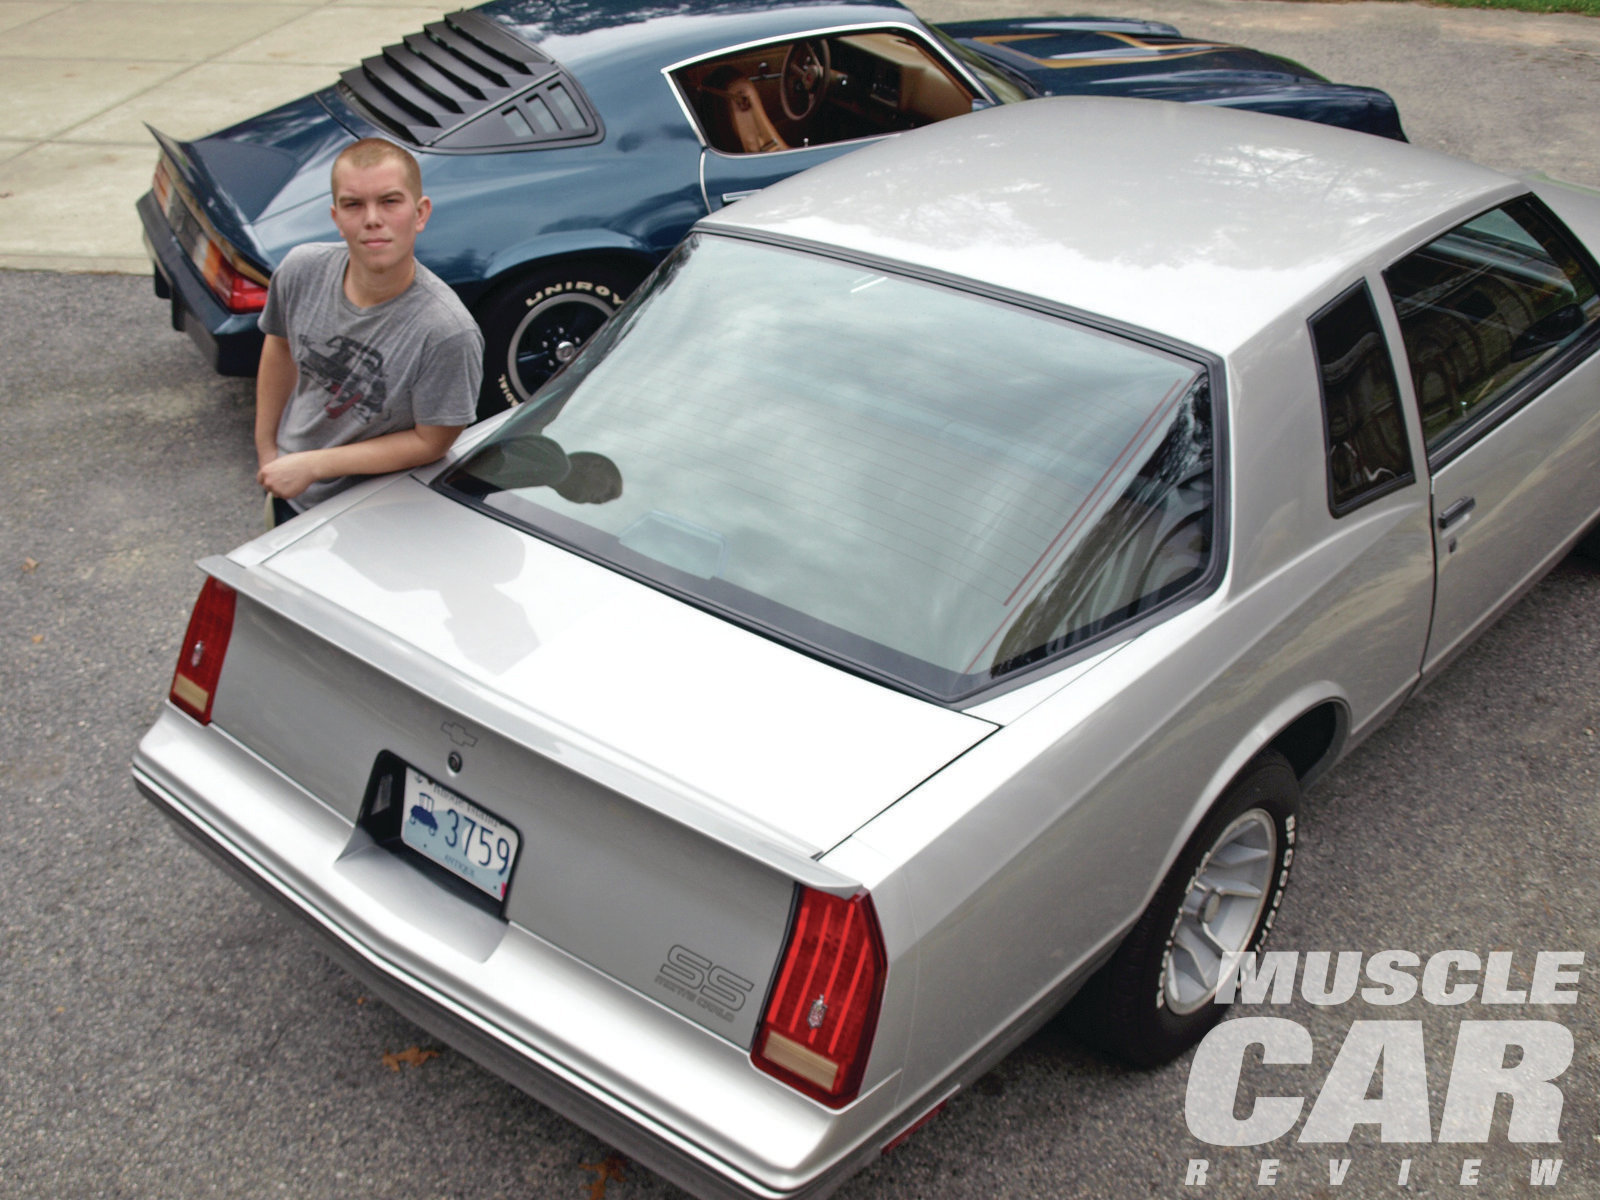 Young Josh poses with dad's one-of-6,052 '87 Monte Carlo SS Aerocoupe. Though limited production Aerocoupes are quite expensive, Chevy built nearly 35,000 non-Aero Monte Carlo Super Sports in 1987 alone. They are very affordable and offer a great way for younger guys to get into the hobby.